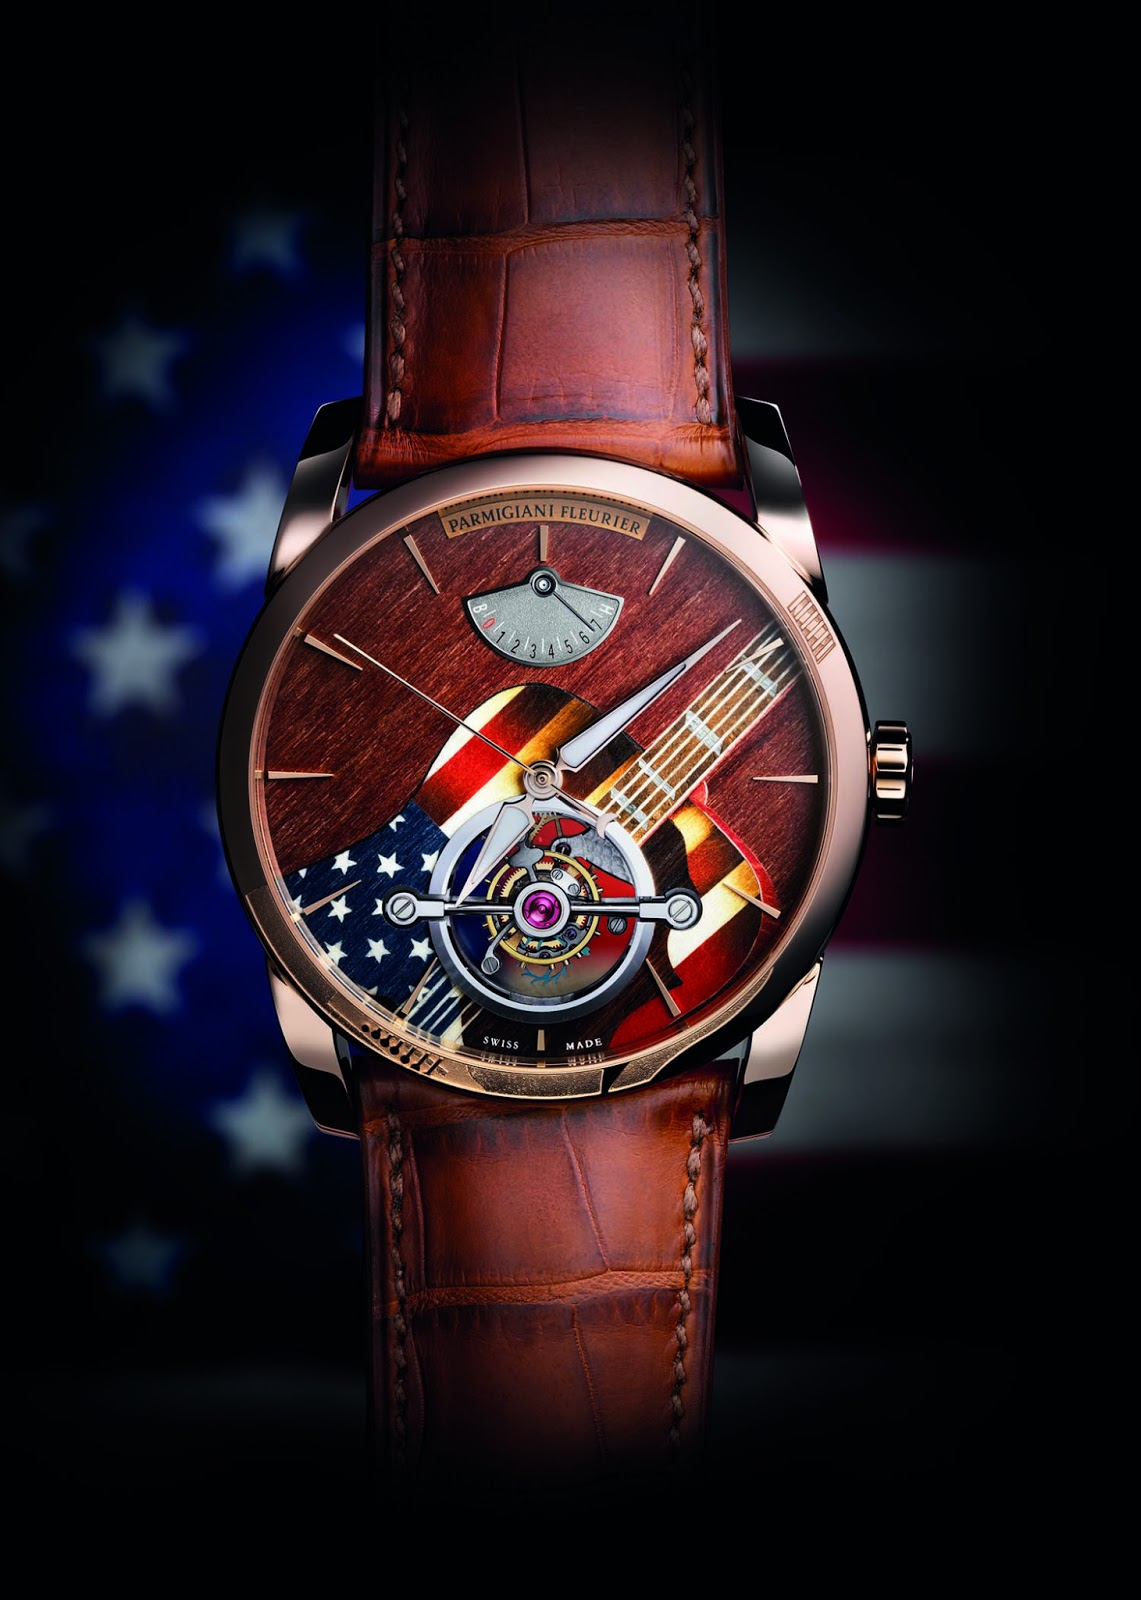 ec799d5ddac Parmigiani Tonda Woodstock In order to project a colorful and musical  dynamism, the Swiss watch brand turned for the first time to the refined  and delicate ...